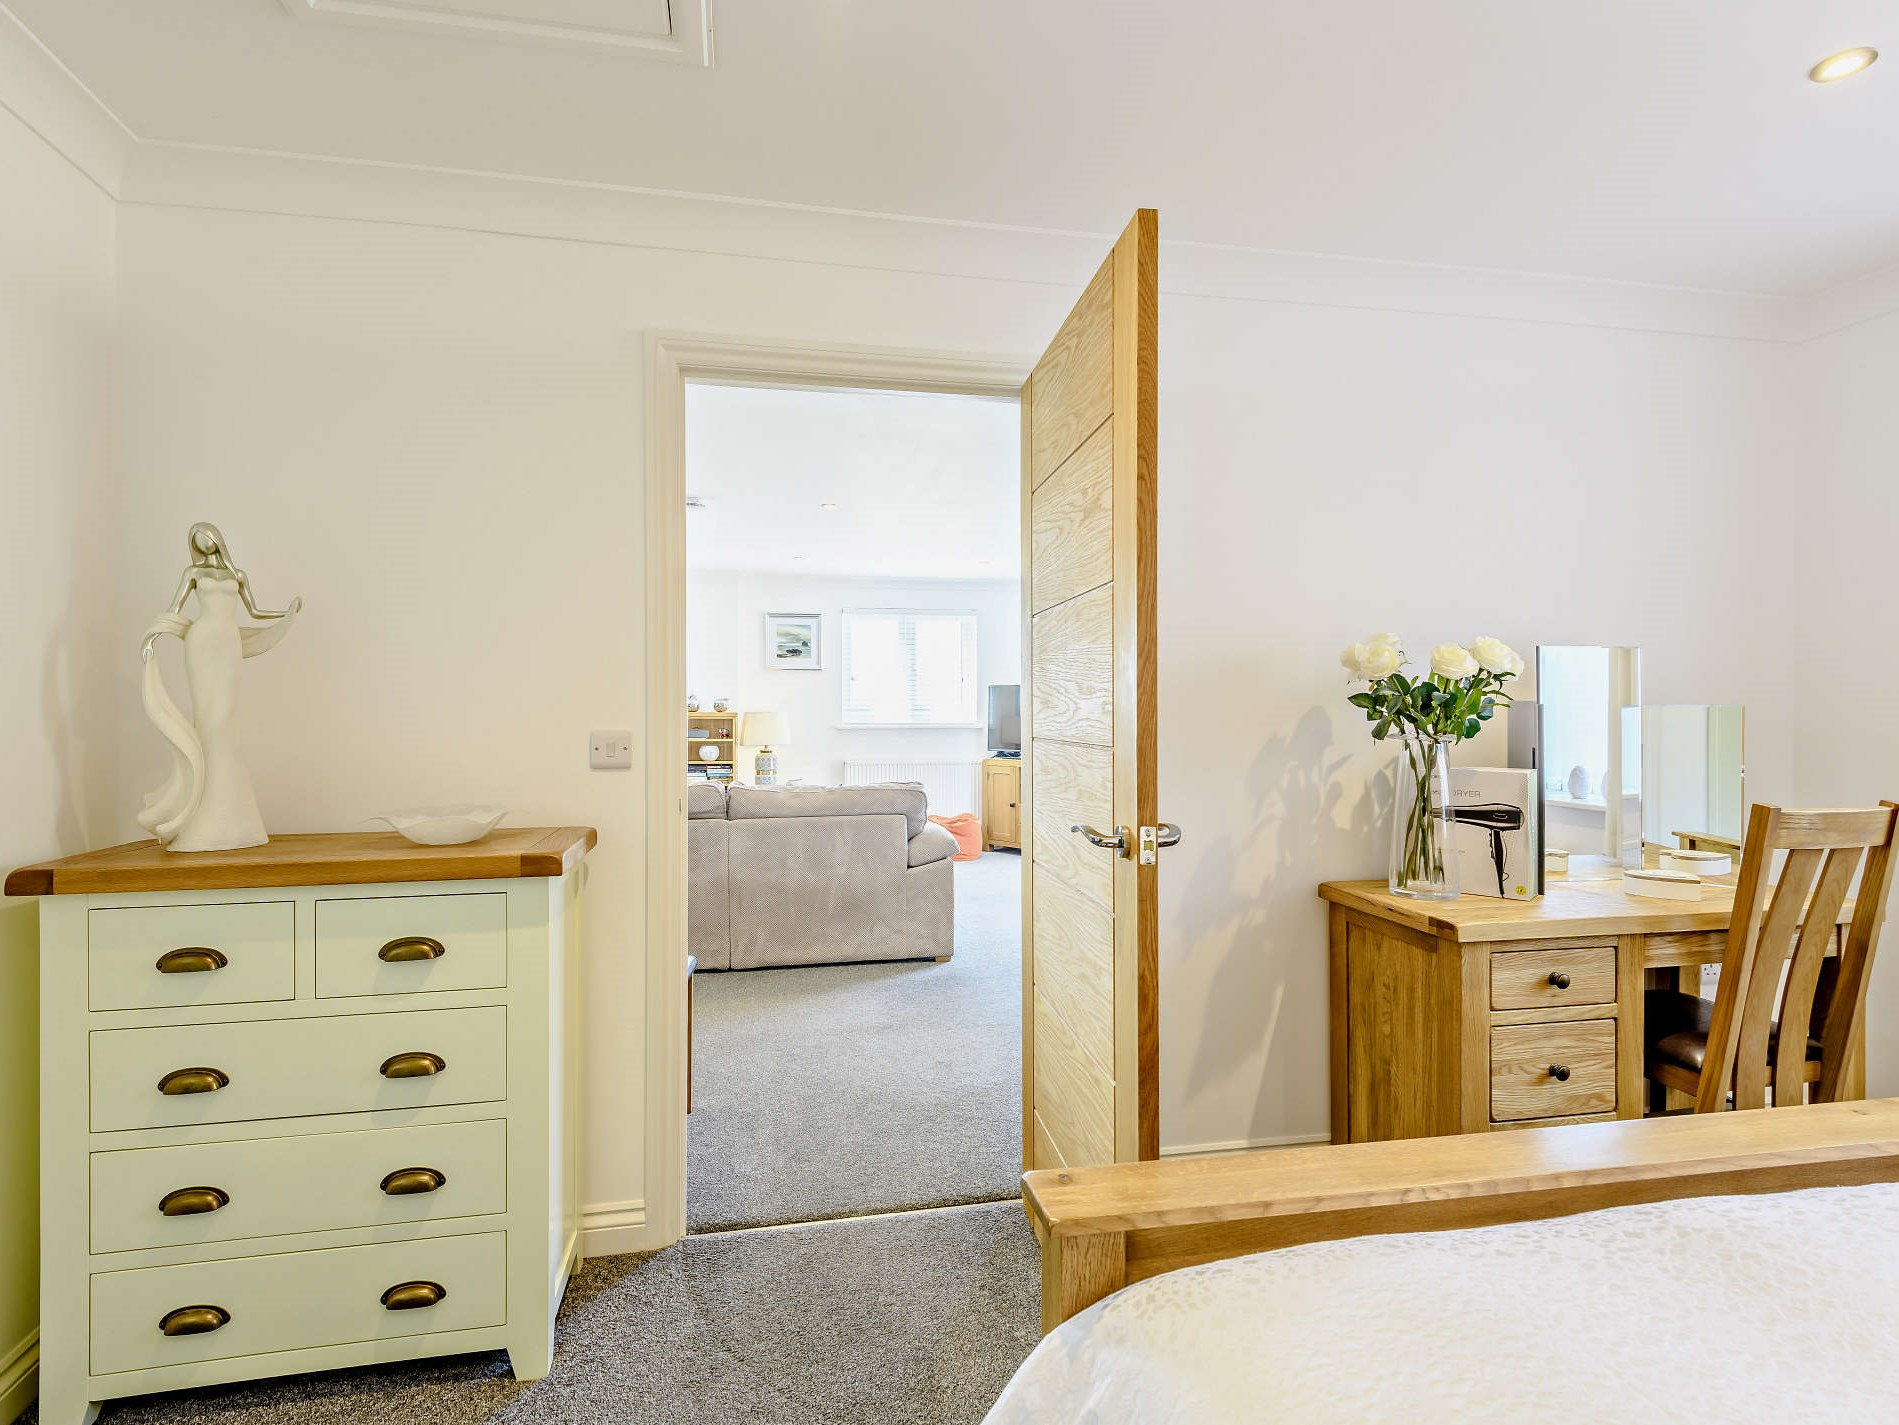 1 Bedroom Cottage in Weymouth, Dorset and Somerset